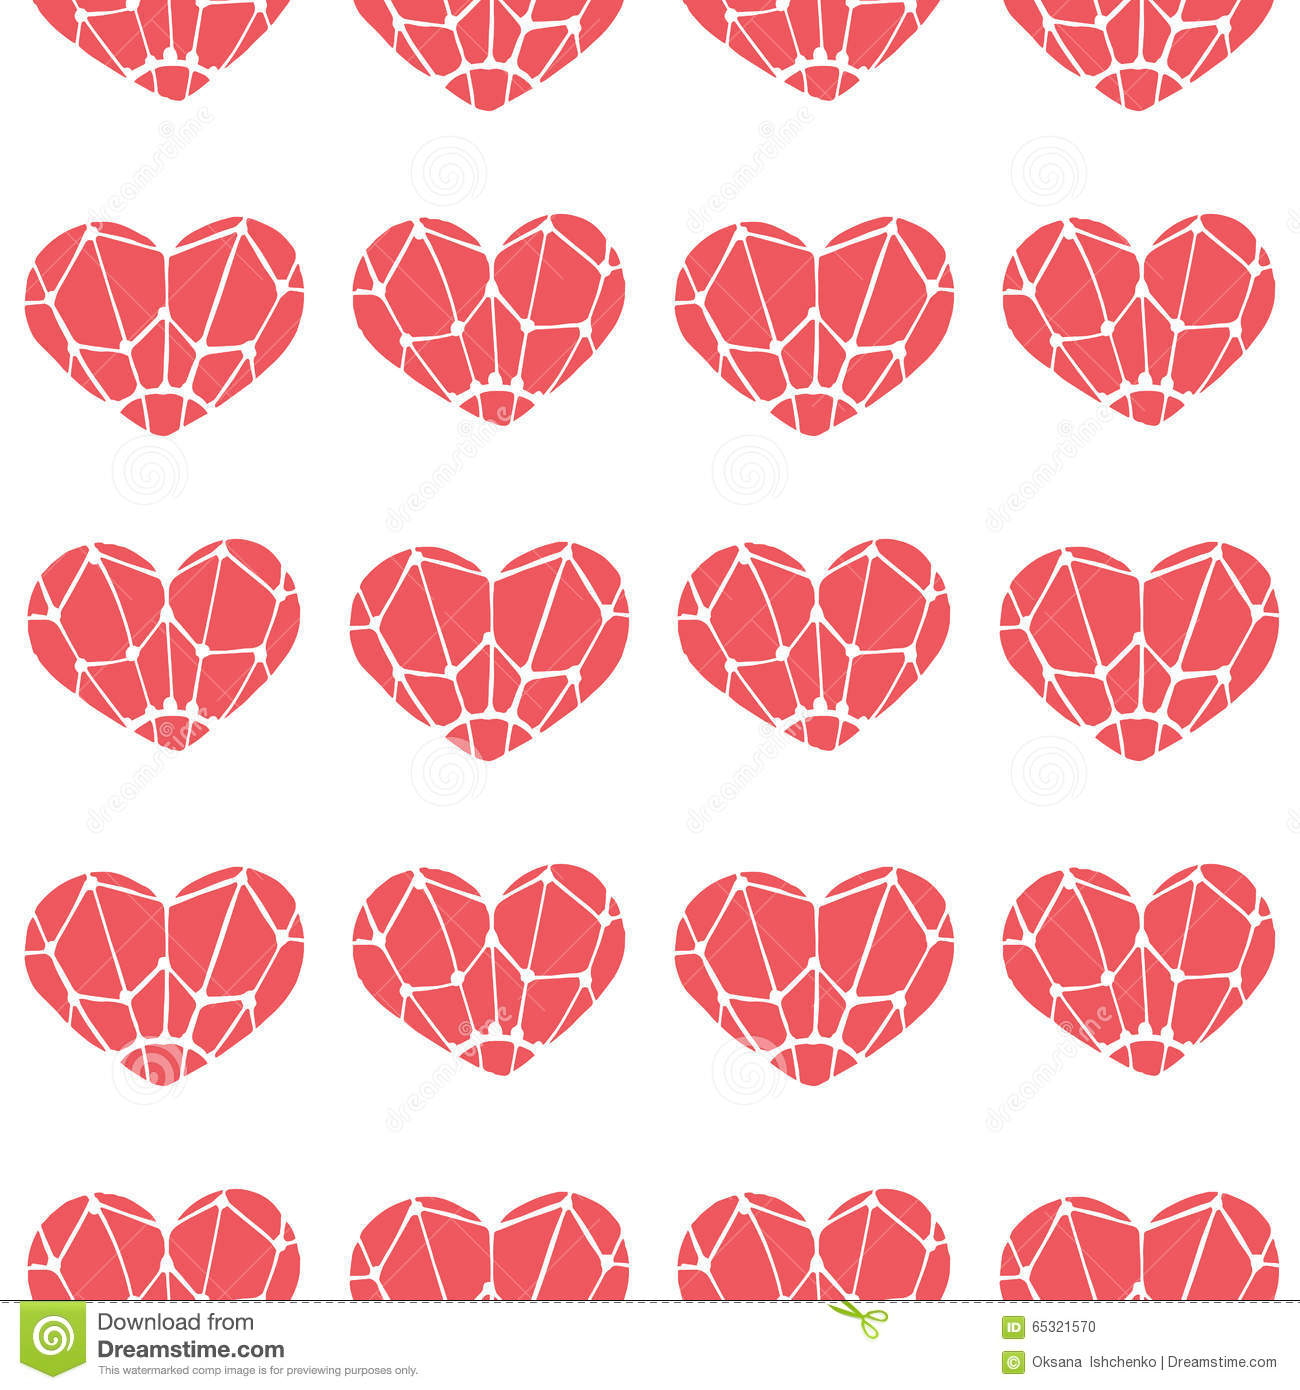 Hand drawn illustrations greeting card for valentines day feast greeting card for valentine s day feast of st valentine seamless pattern balloon honeymoon kristyandbryce Choice Image